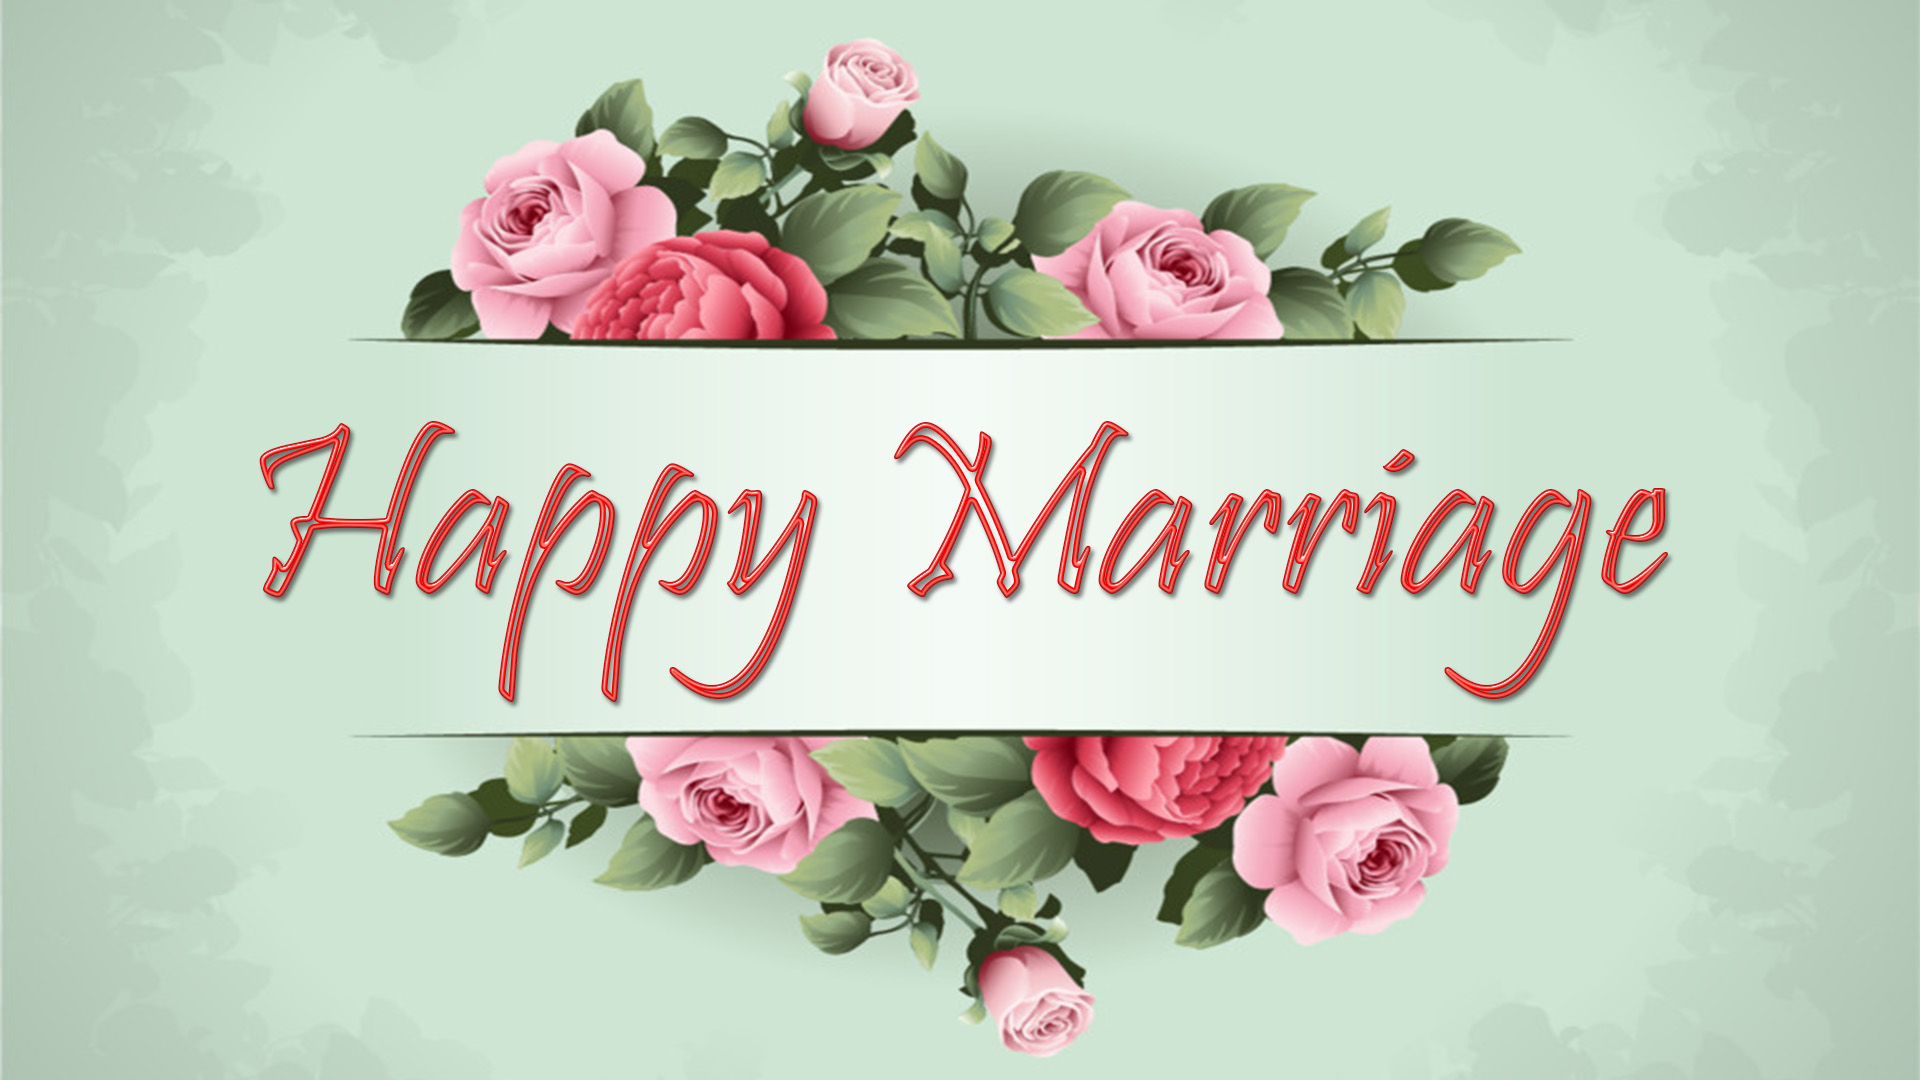 Happy Marriage Images, Pictures & HD Wallpapers 2018